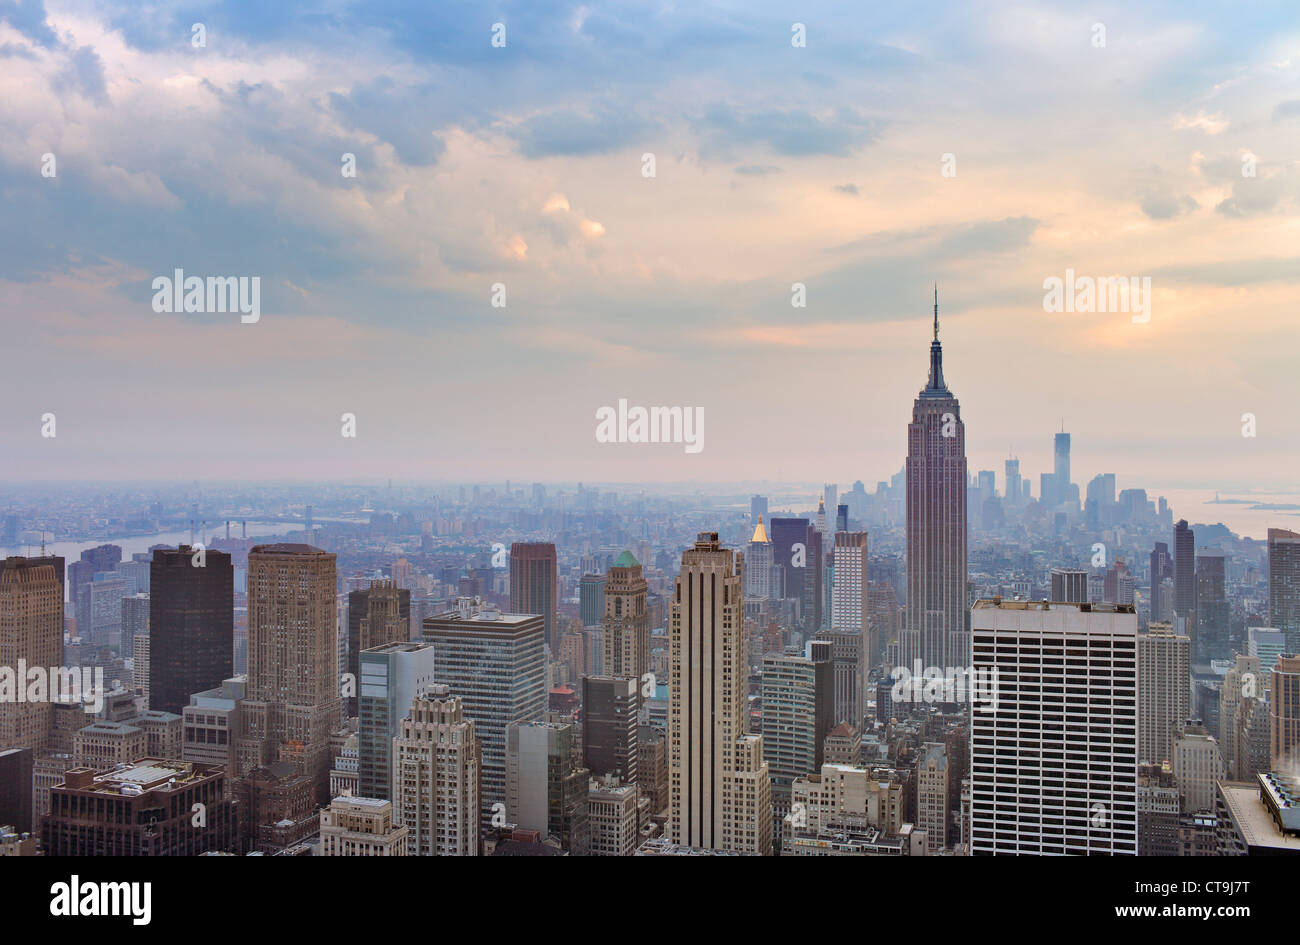 A view over midtown and downtown Manhattan, New York City, USA. - Stock Image